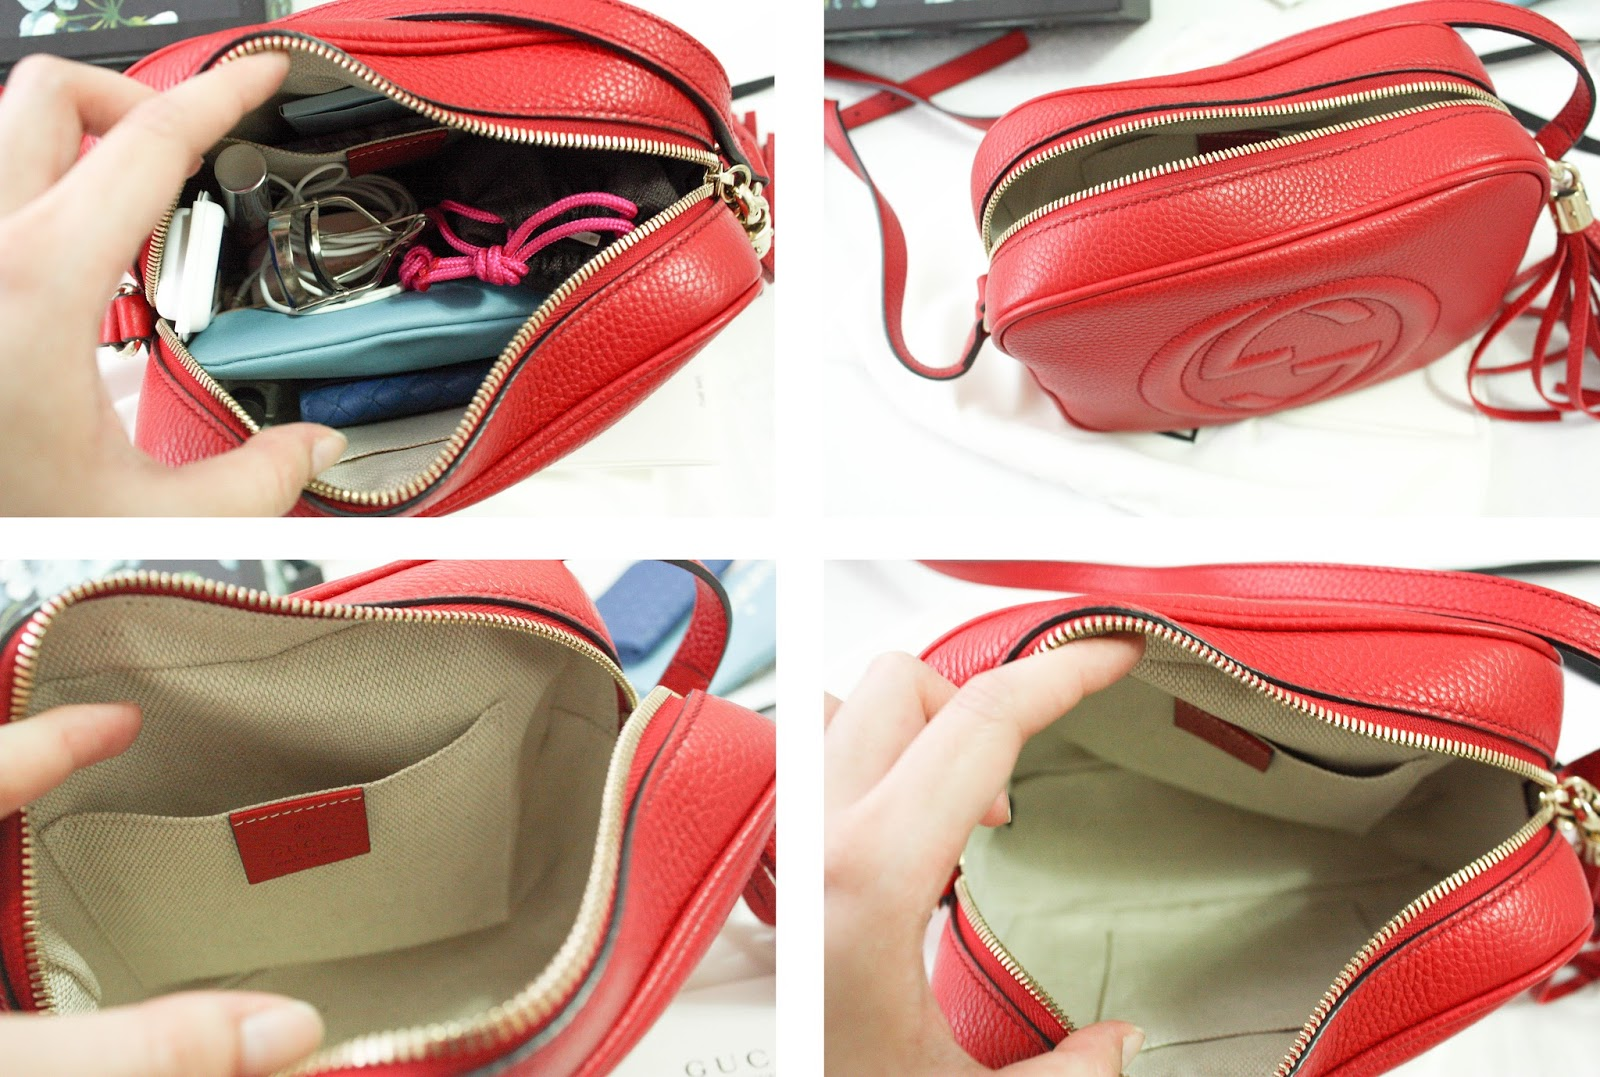 6e798084ec26da It's so beautiful. This bag is so beautifully crafted. Also, it holds a lot  for such a small bag.